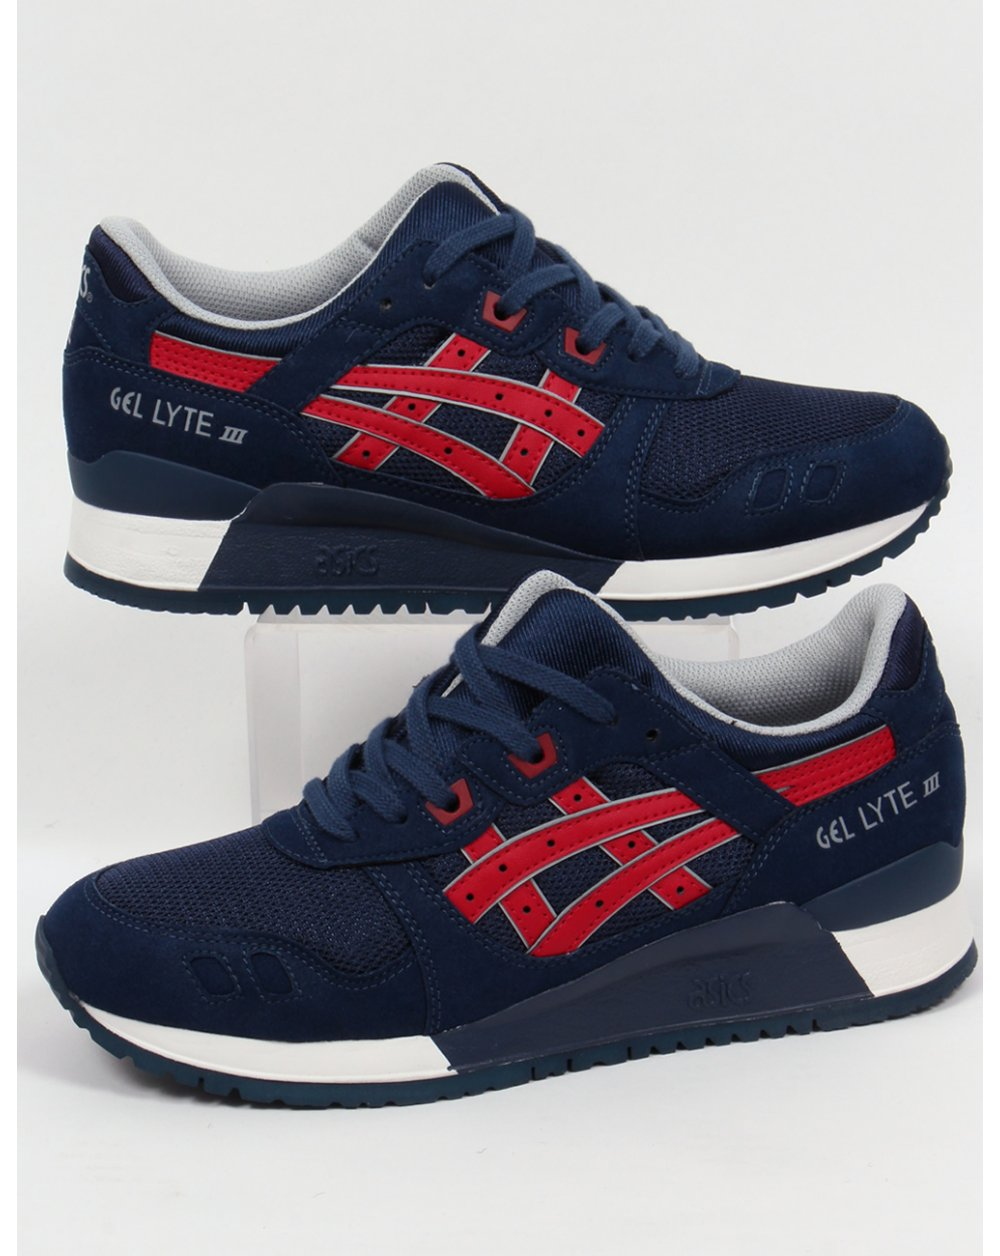 asics gel lyte iii navy red